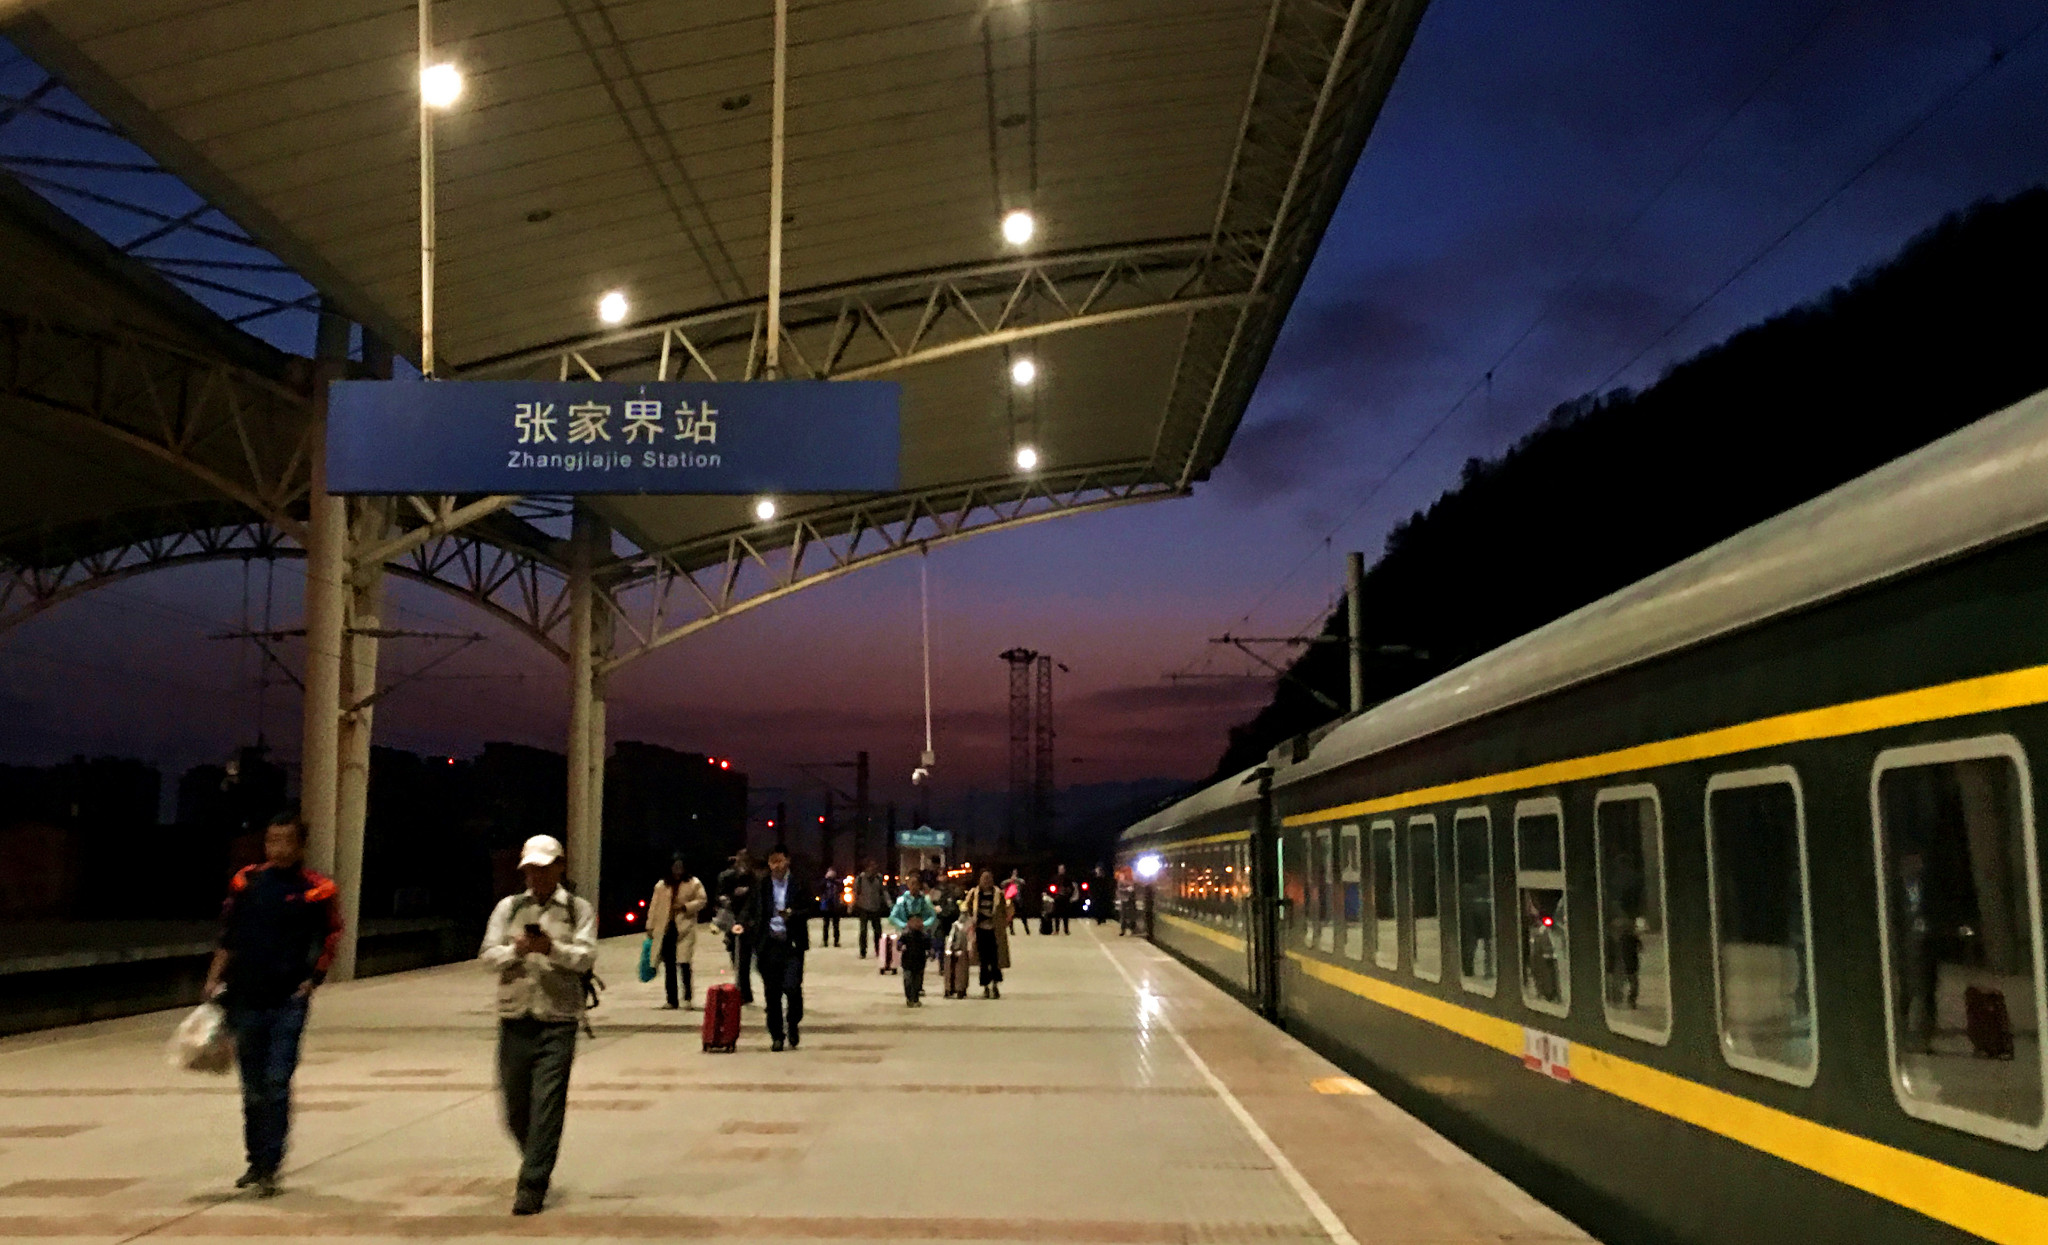 zhangjiajie train station